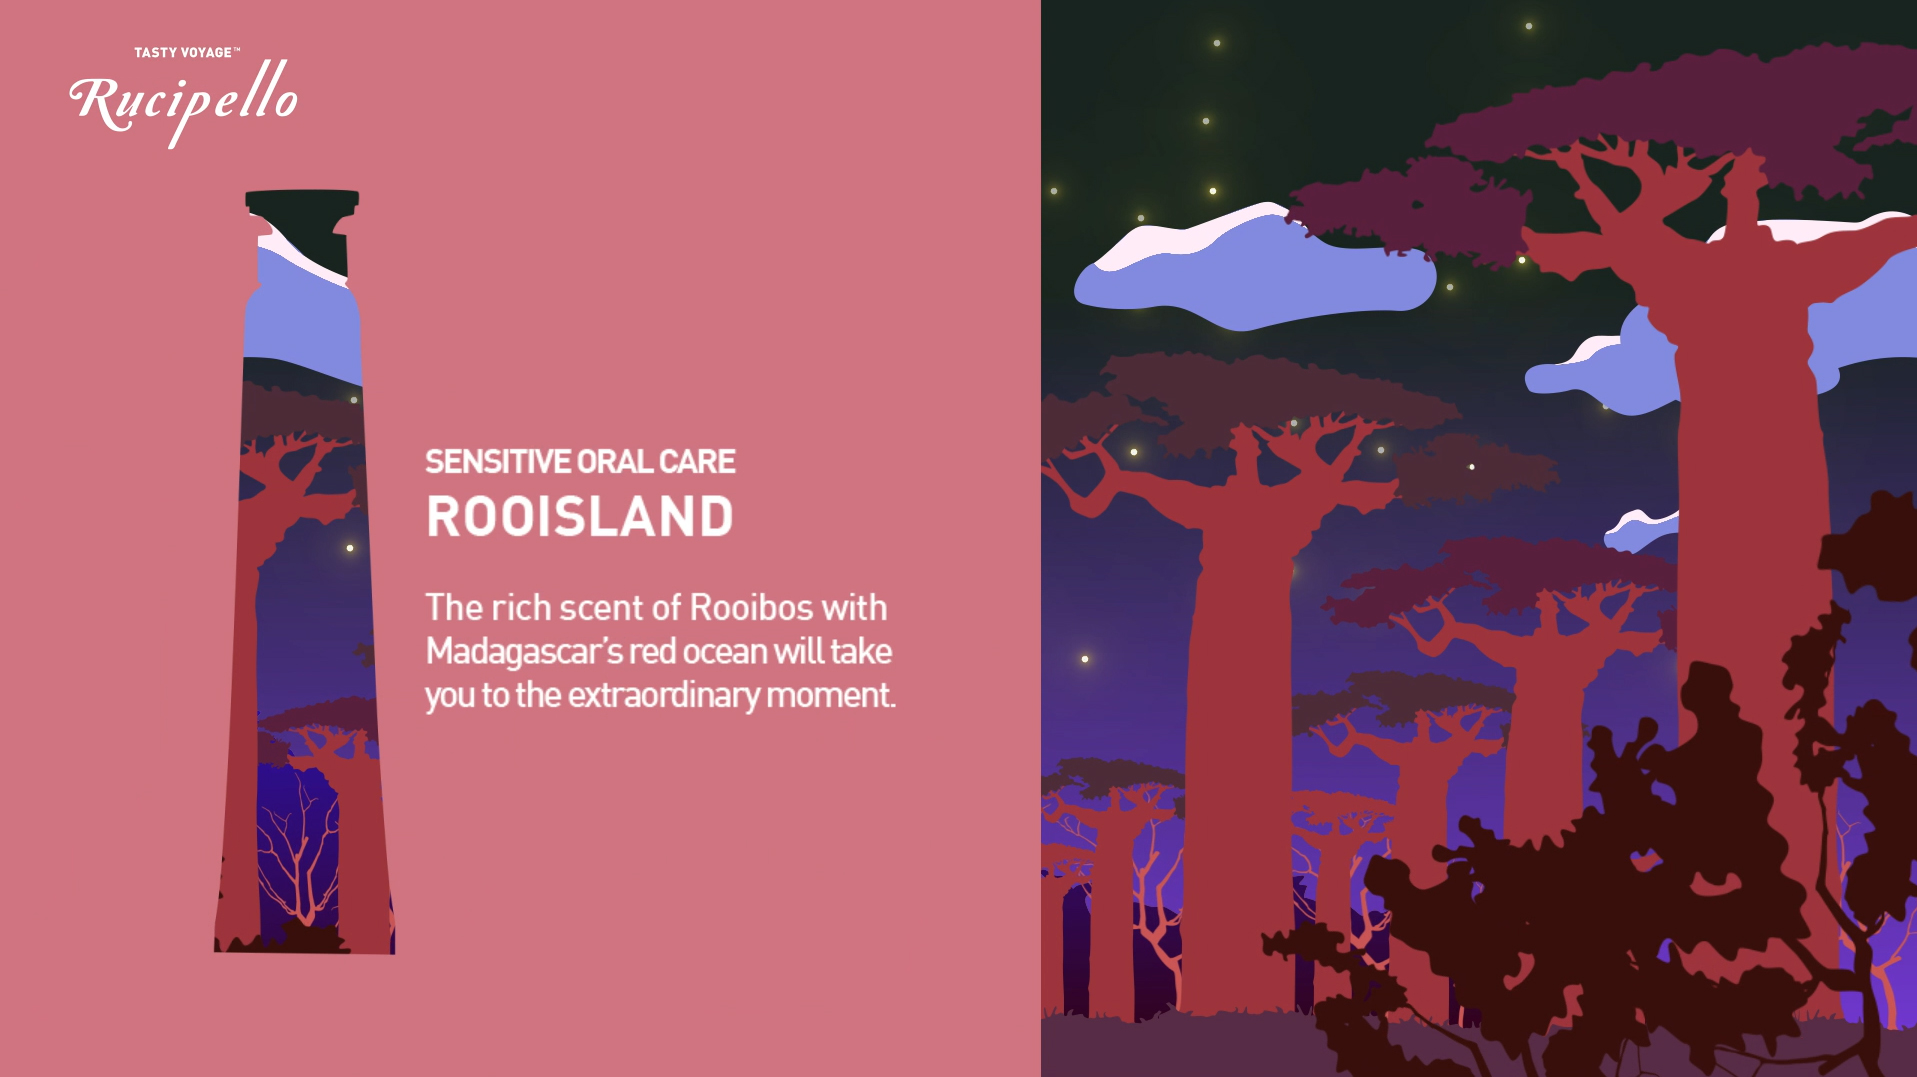 ROOISLAND MOVIE